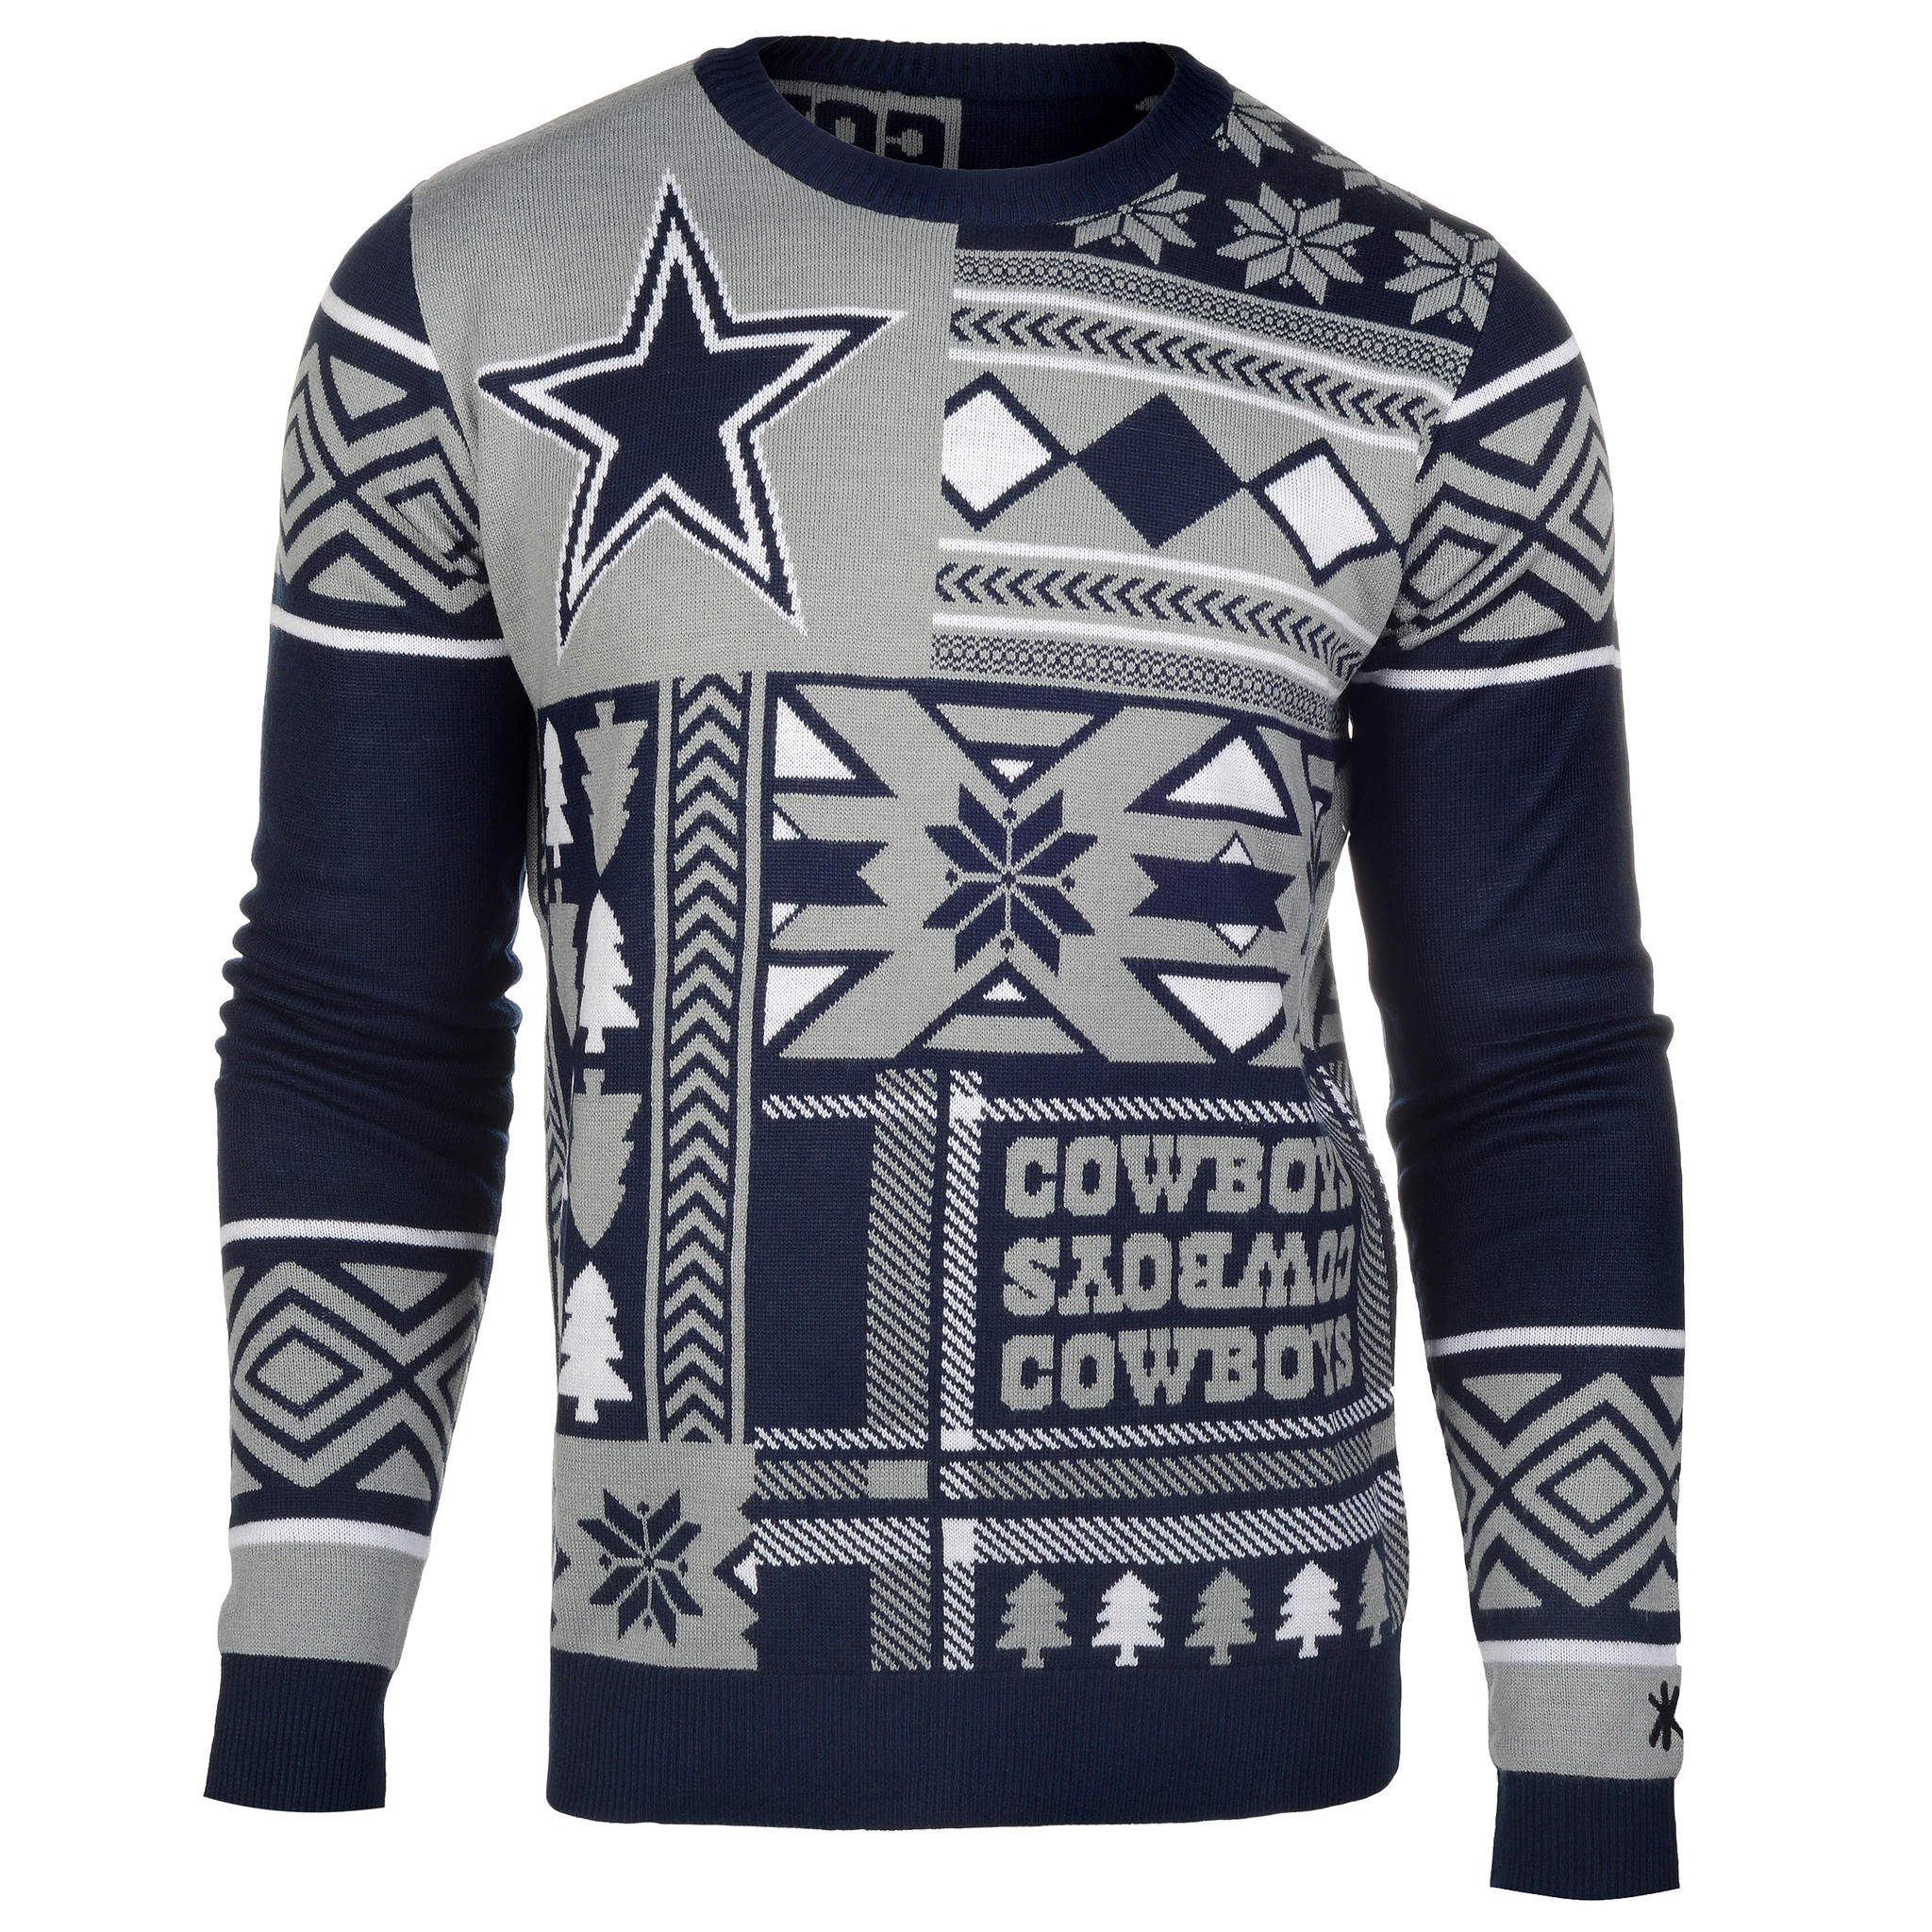 Top Nike Cowboys Men\'s Ugly Sweater  for sale Pbh2pxJf